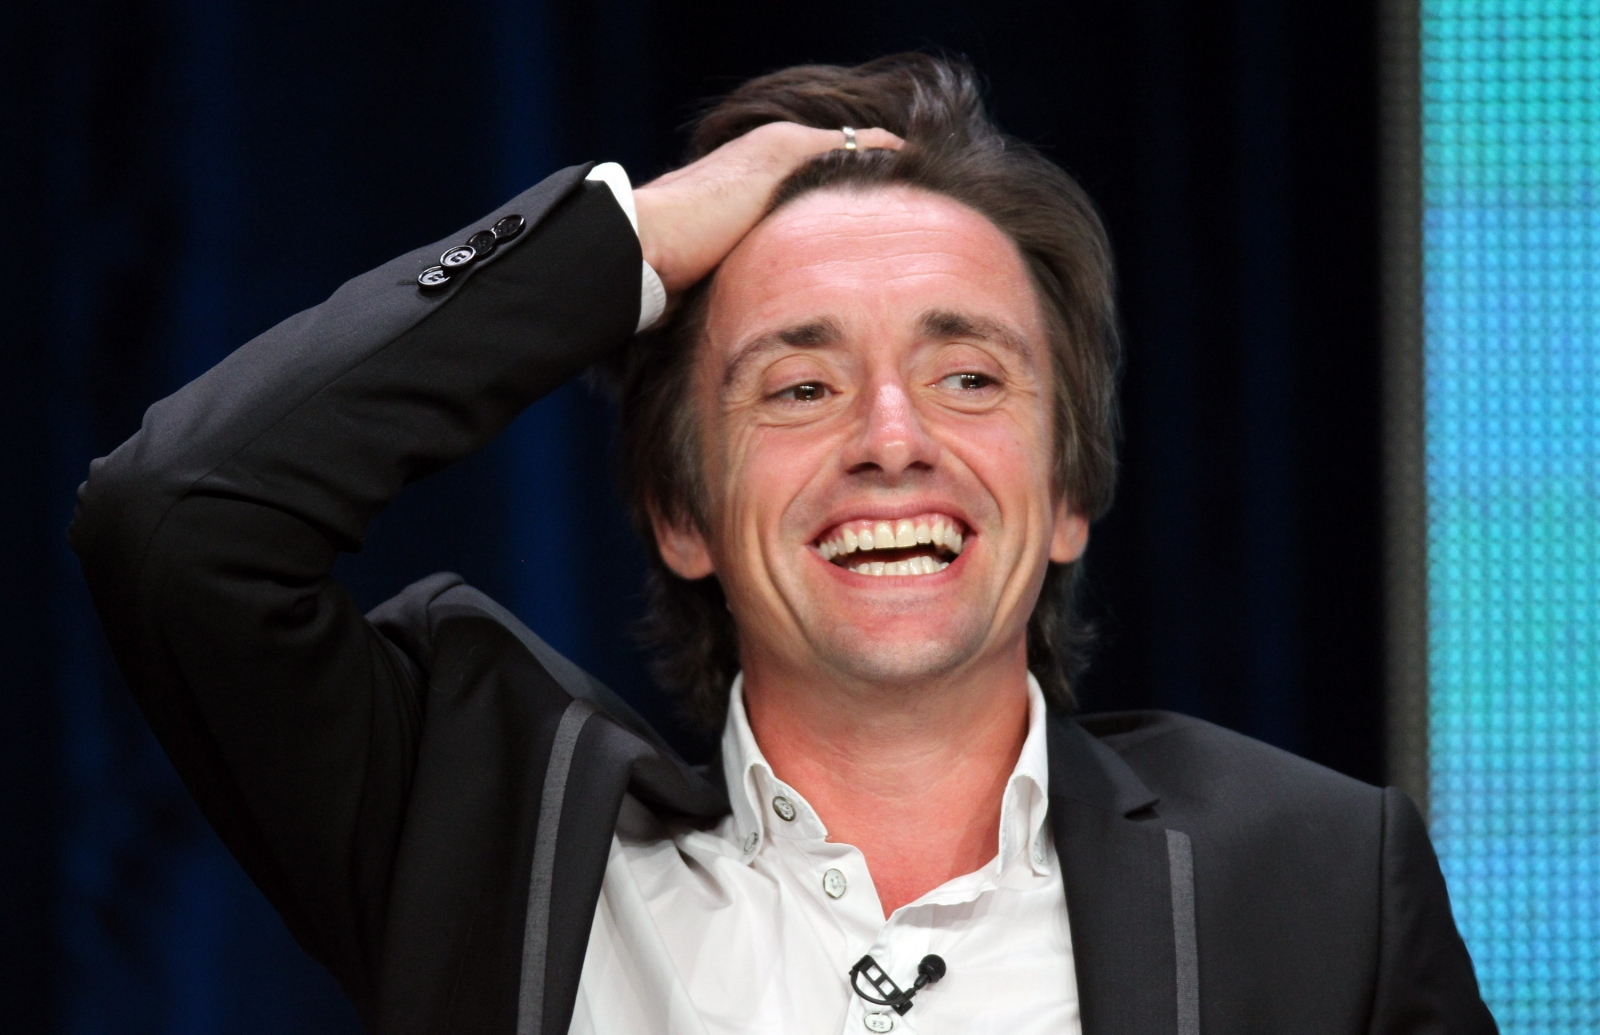 Richard Hammond suffers second crash on motorbike